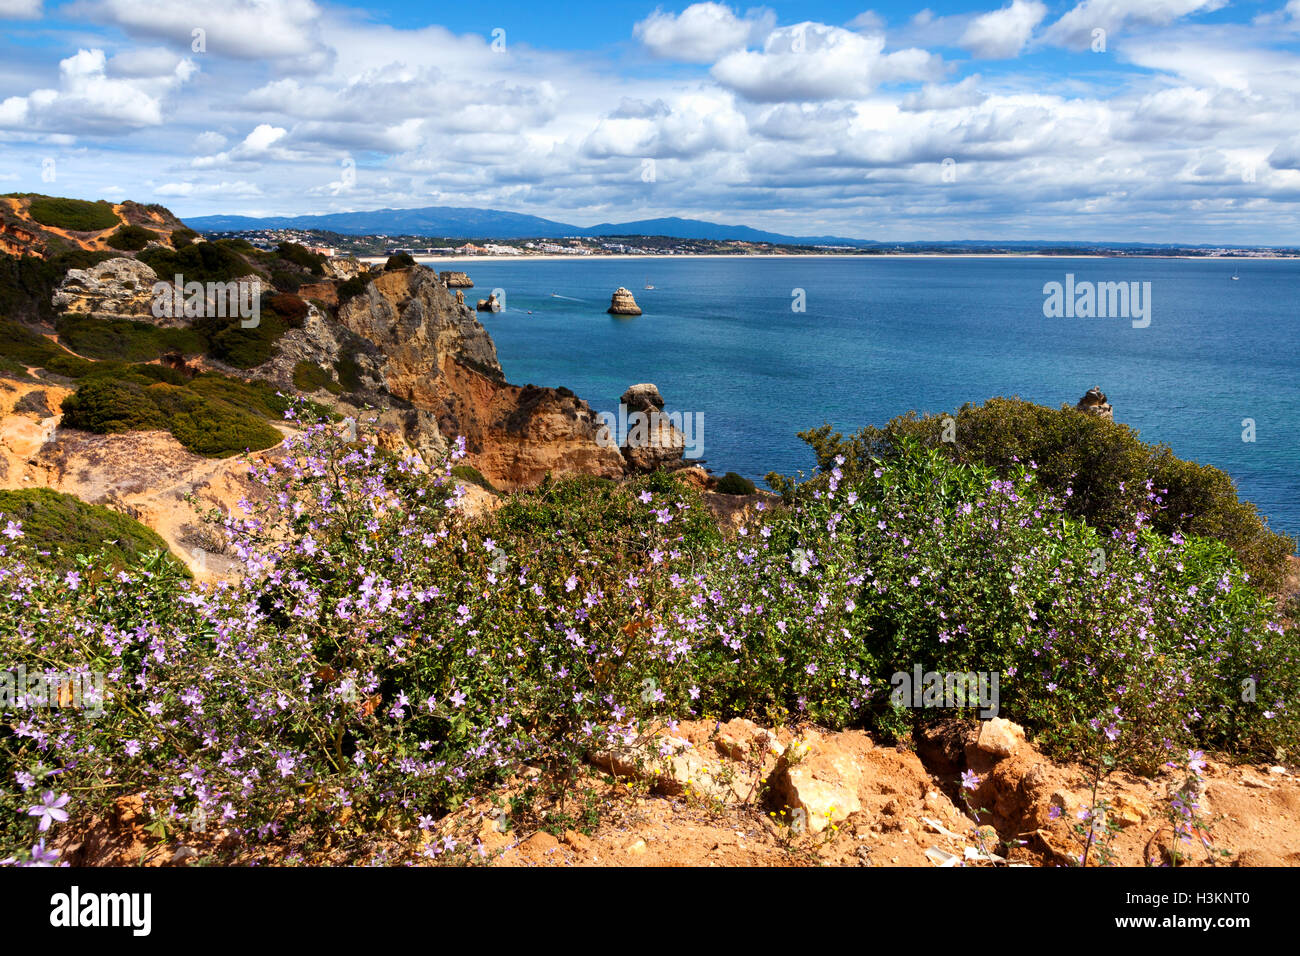 Coastline Algarve with flowers in the spring. Portugal, near Lagos Stock Photo